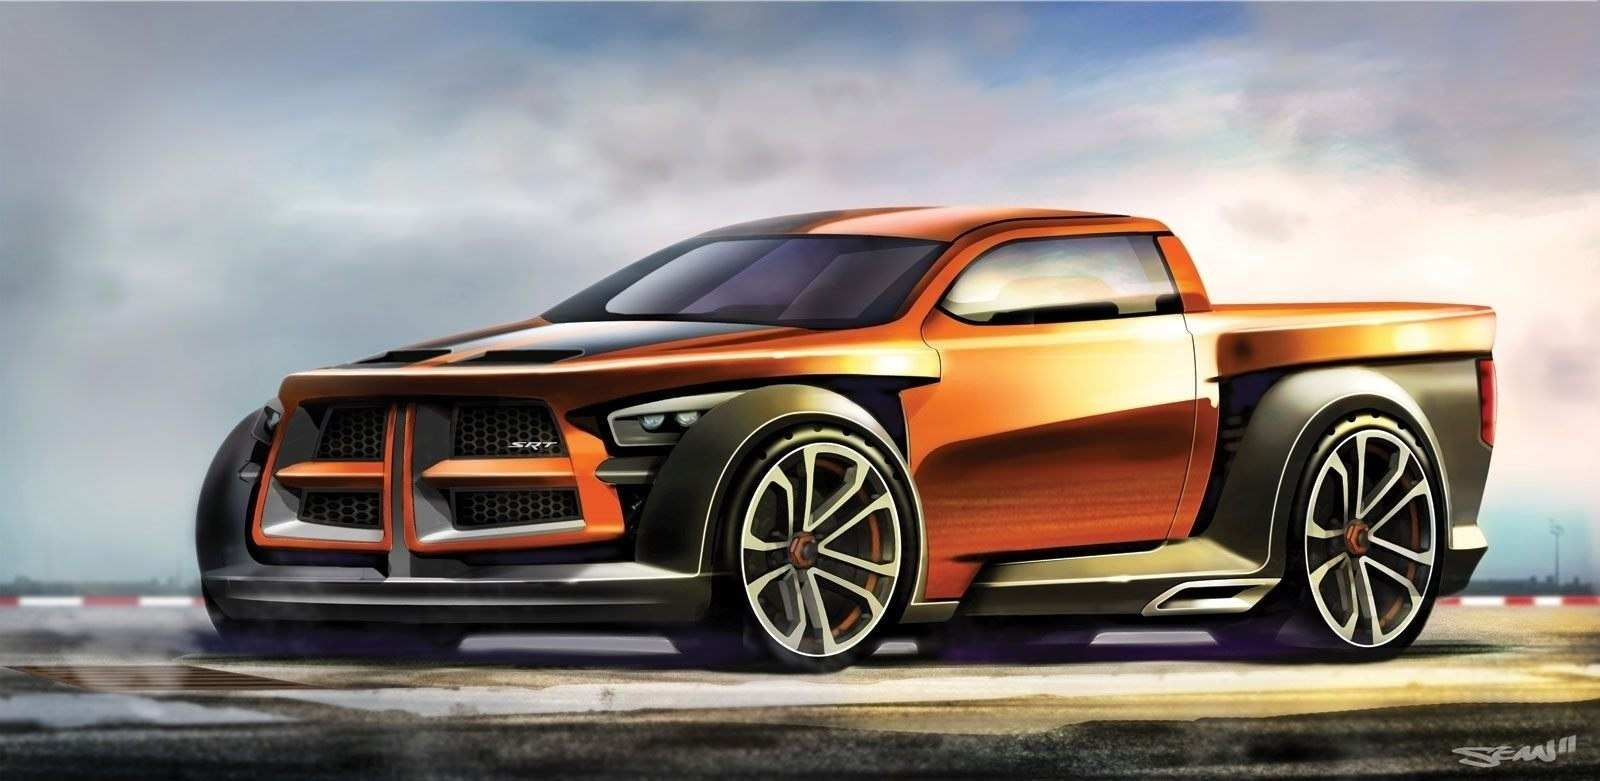 37 The Best Dodge Rampage 2020 Price Design And Review